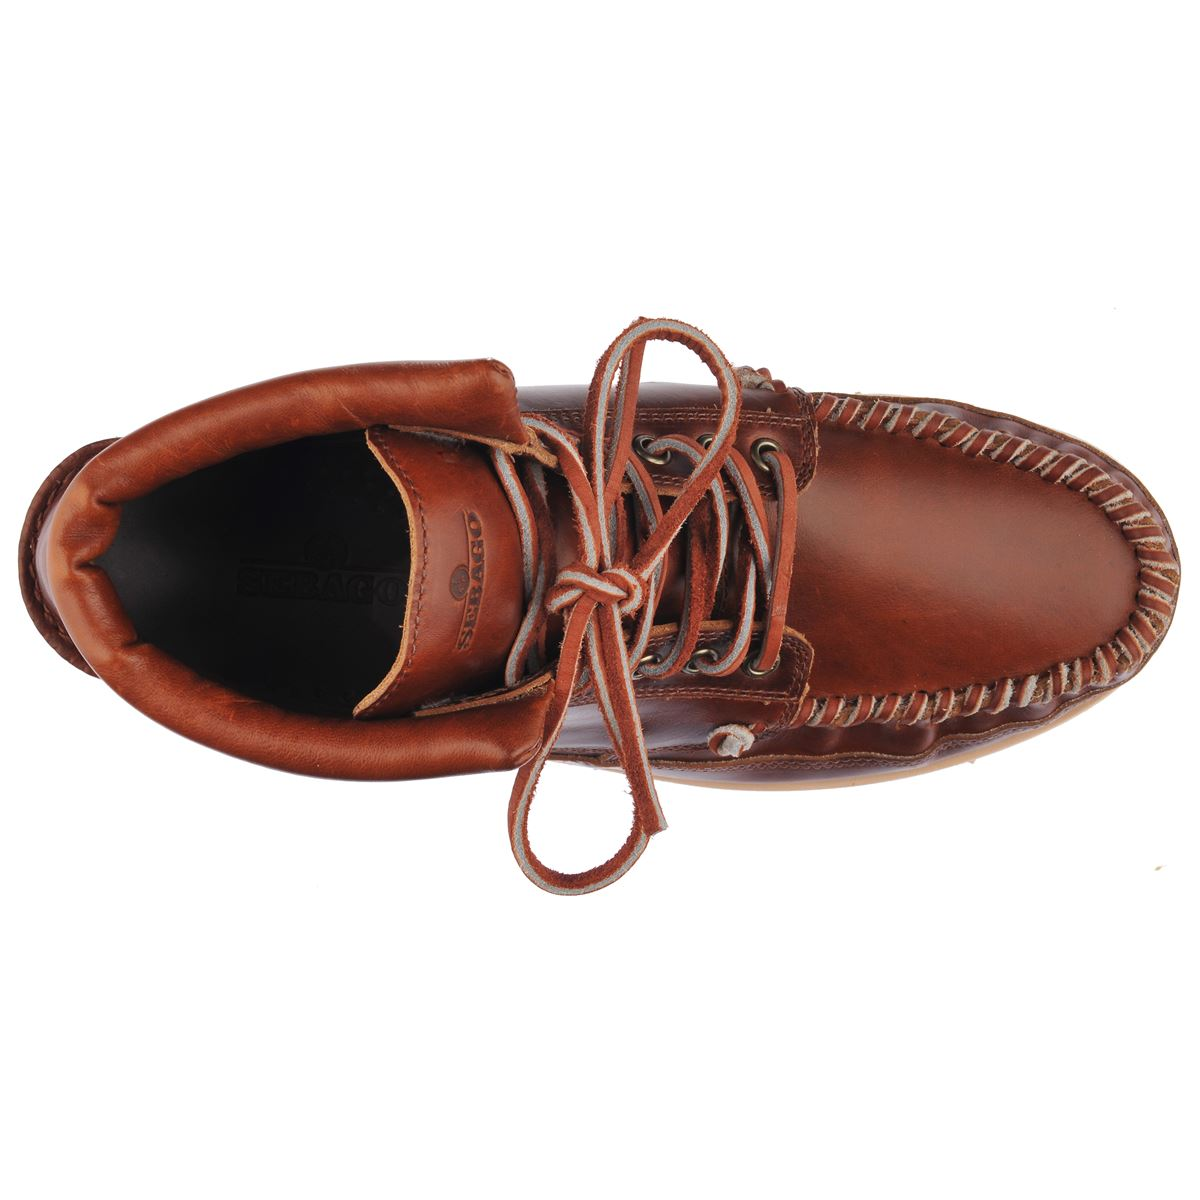 SENECA MID - BROWN/CINNAMON